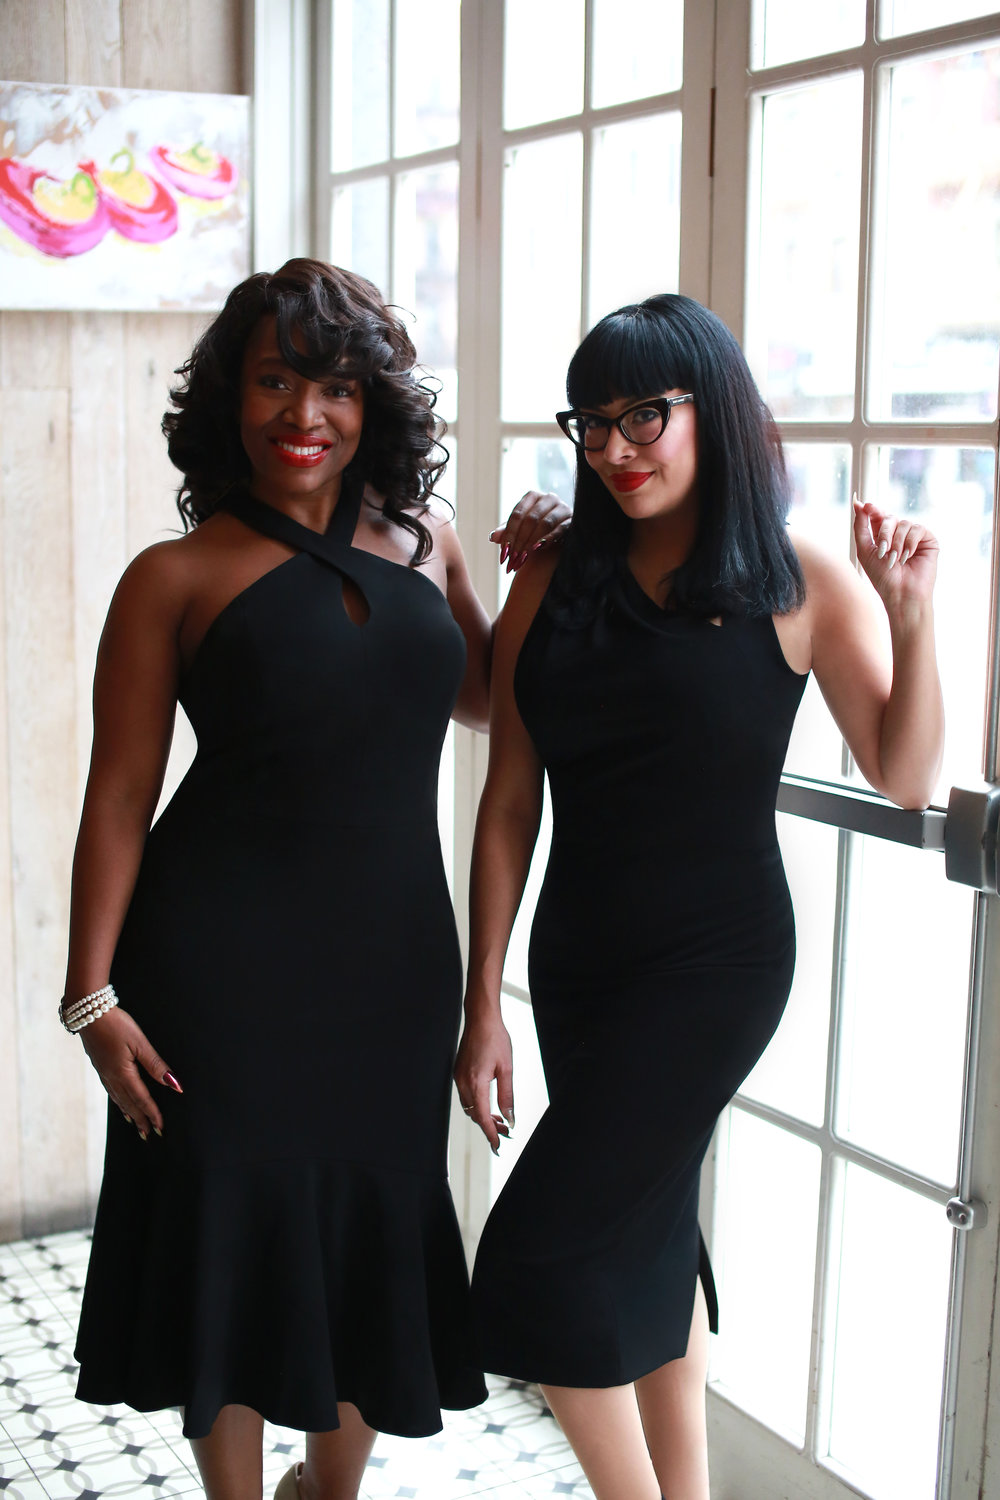 From left to right: Yoli is wearing our  Samantha Flounce , while Sabrina is wearing our  Tyra Midi .